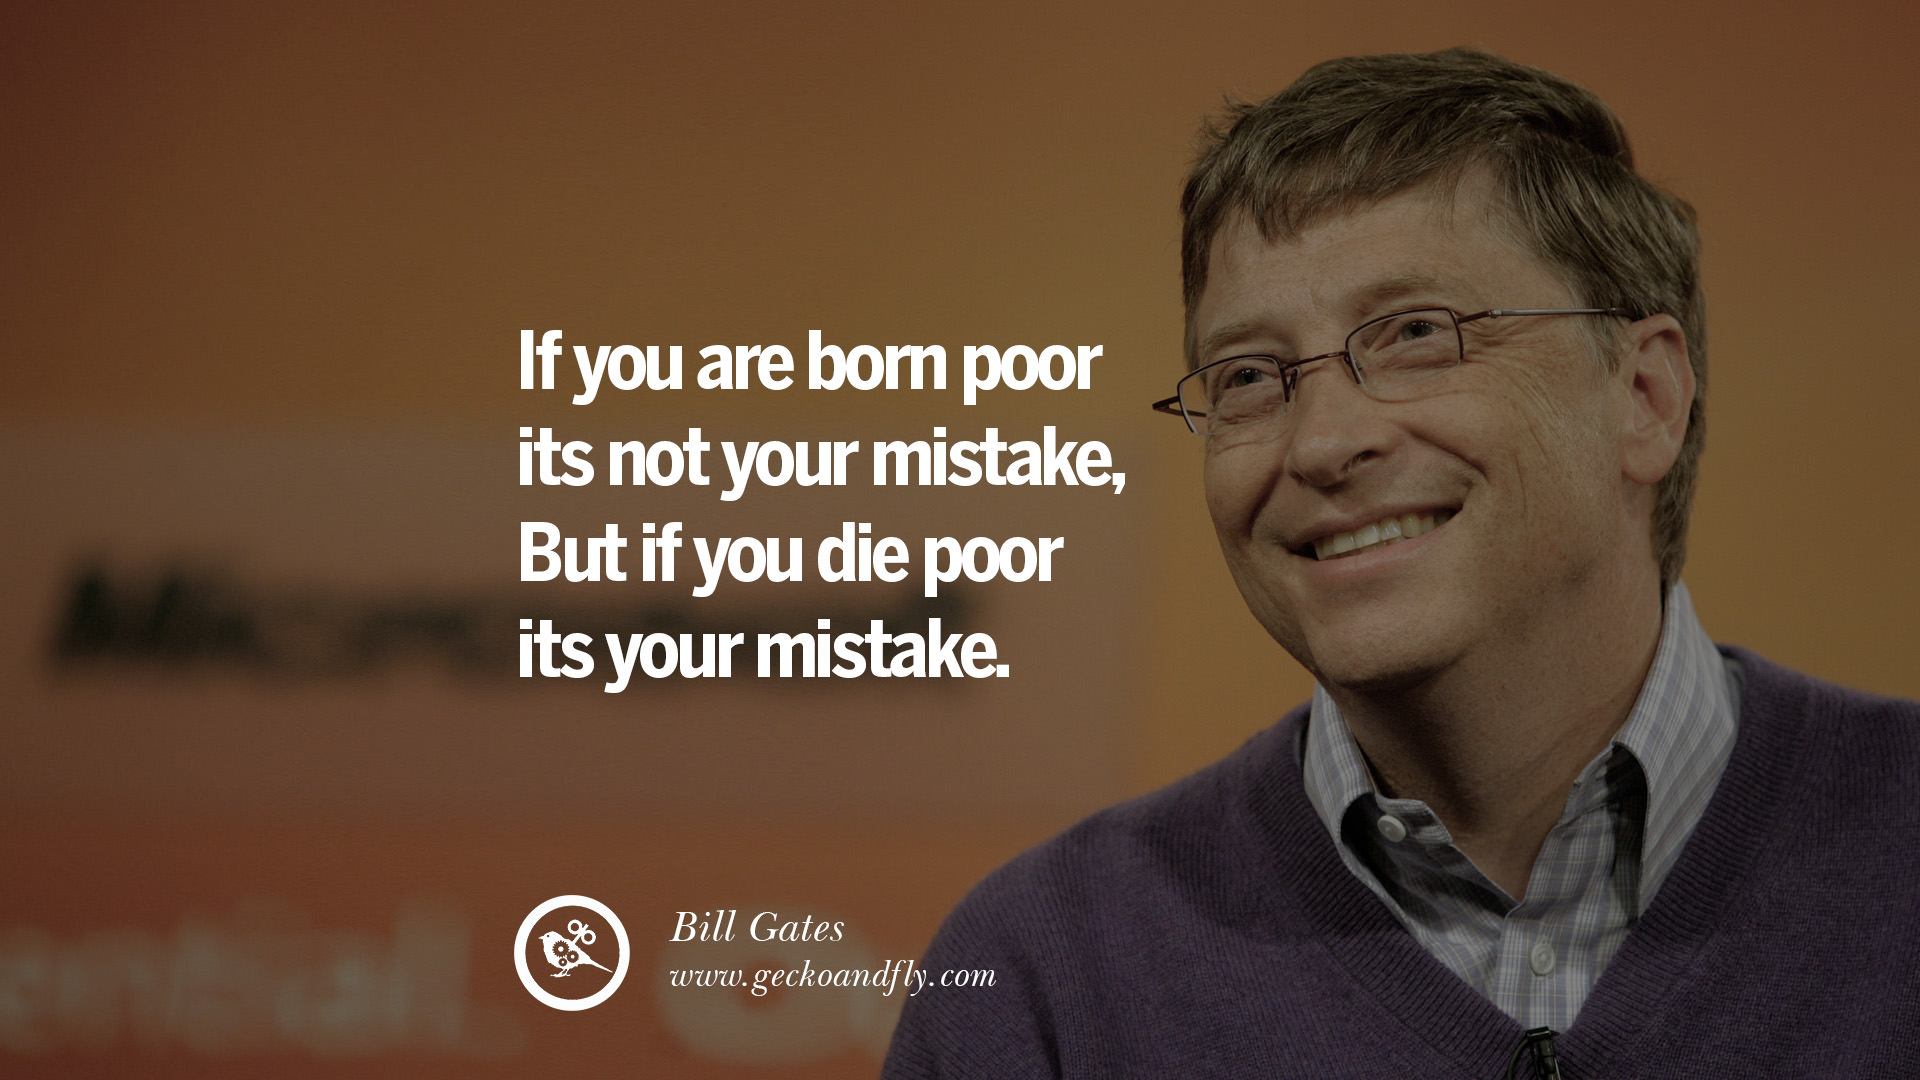 Motivational Quotes For Success In Life Enchanting 15 Inspiring Bill Gates Quotes On Success And Life  Geckoandfly 2018